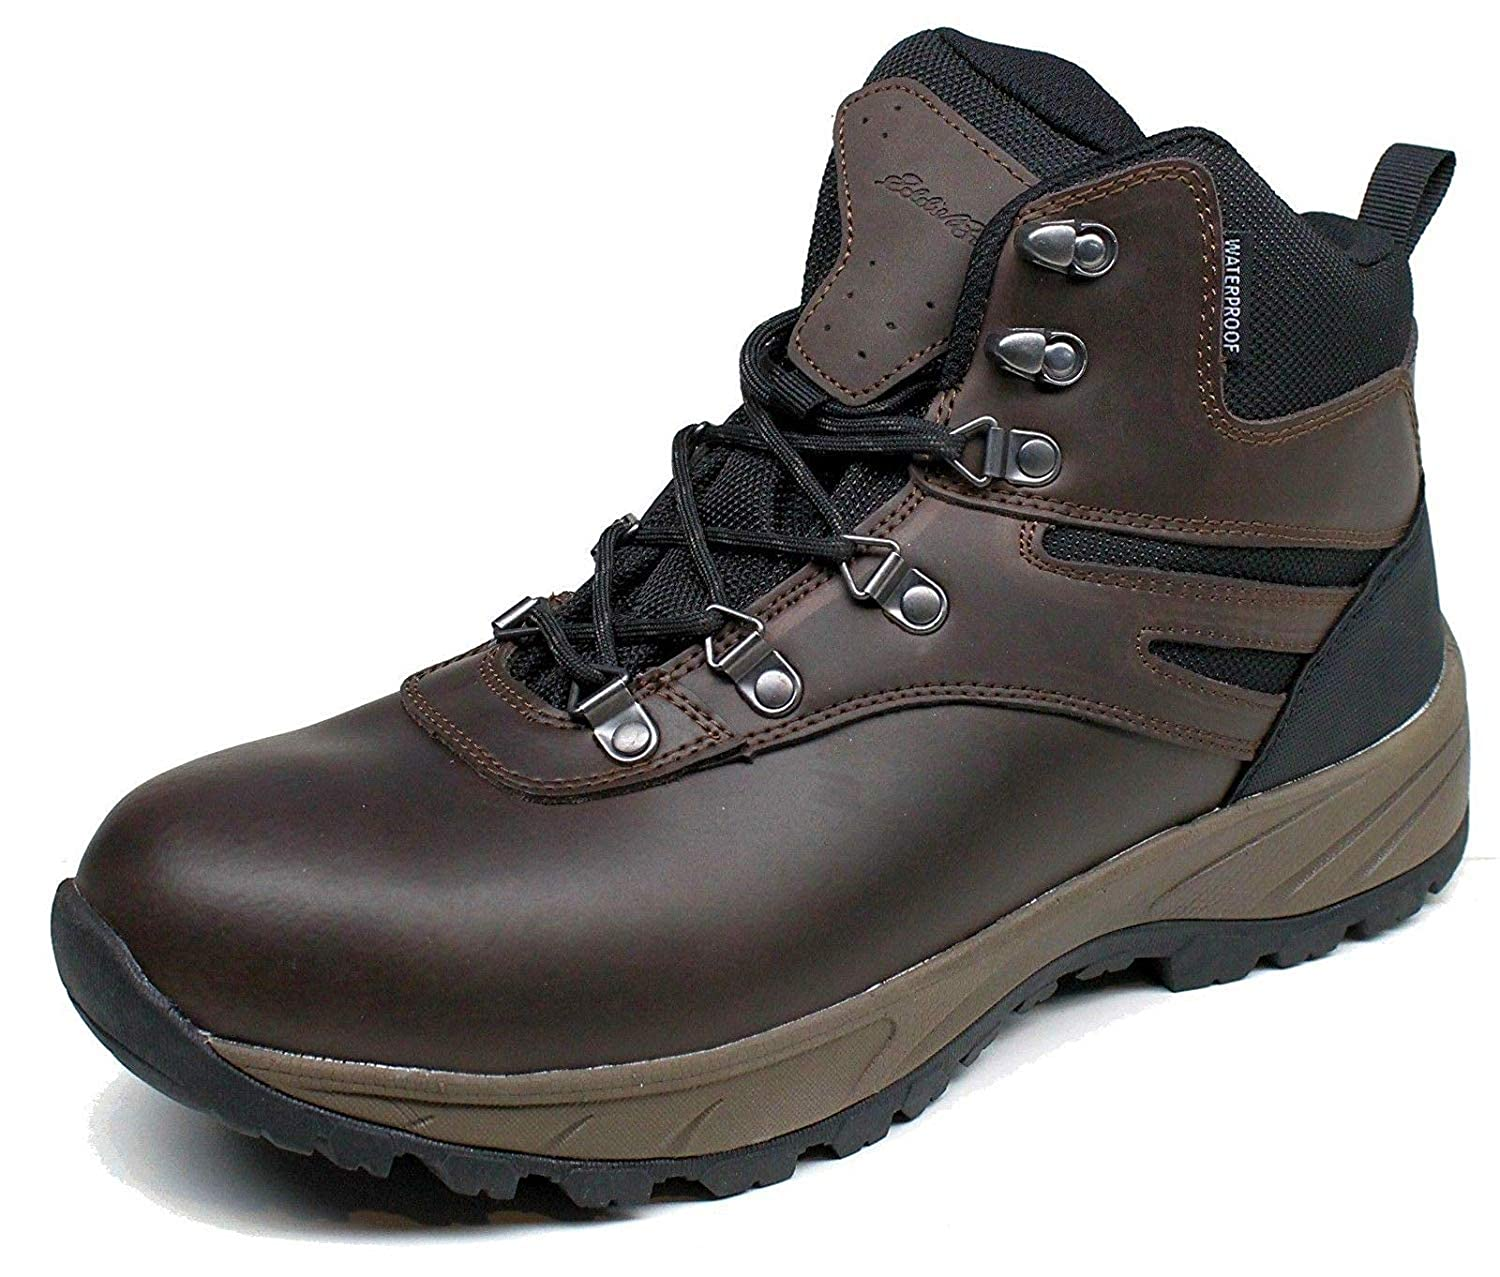 588cb1d6e38 Eddie-Bauer-Brad-Leather Upper-100% waterproof hiking boots( Style Brad),  size 10